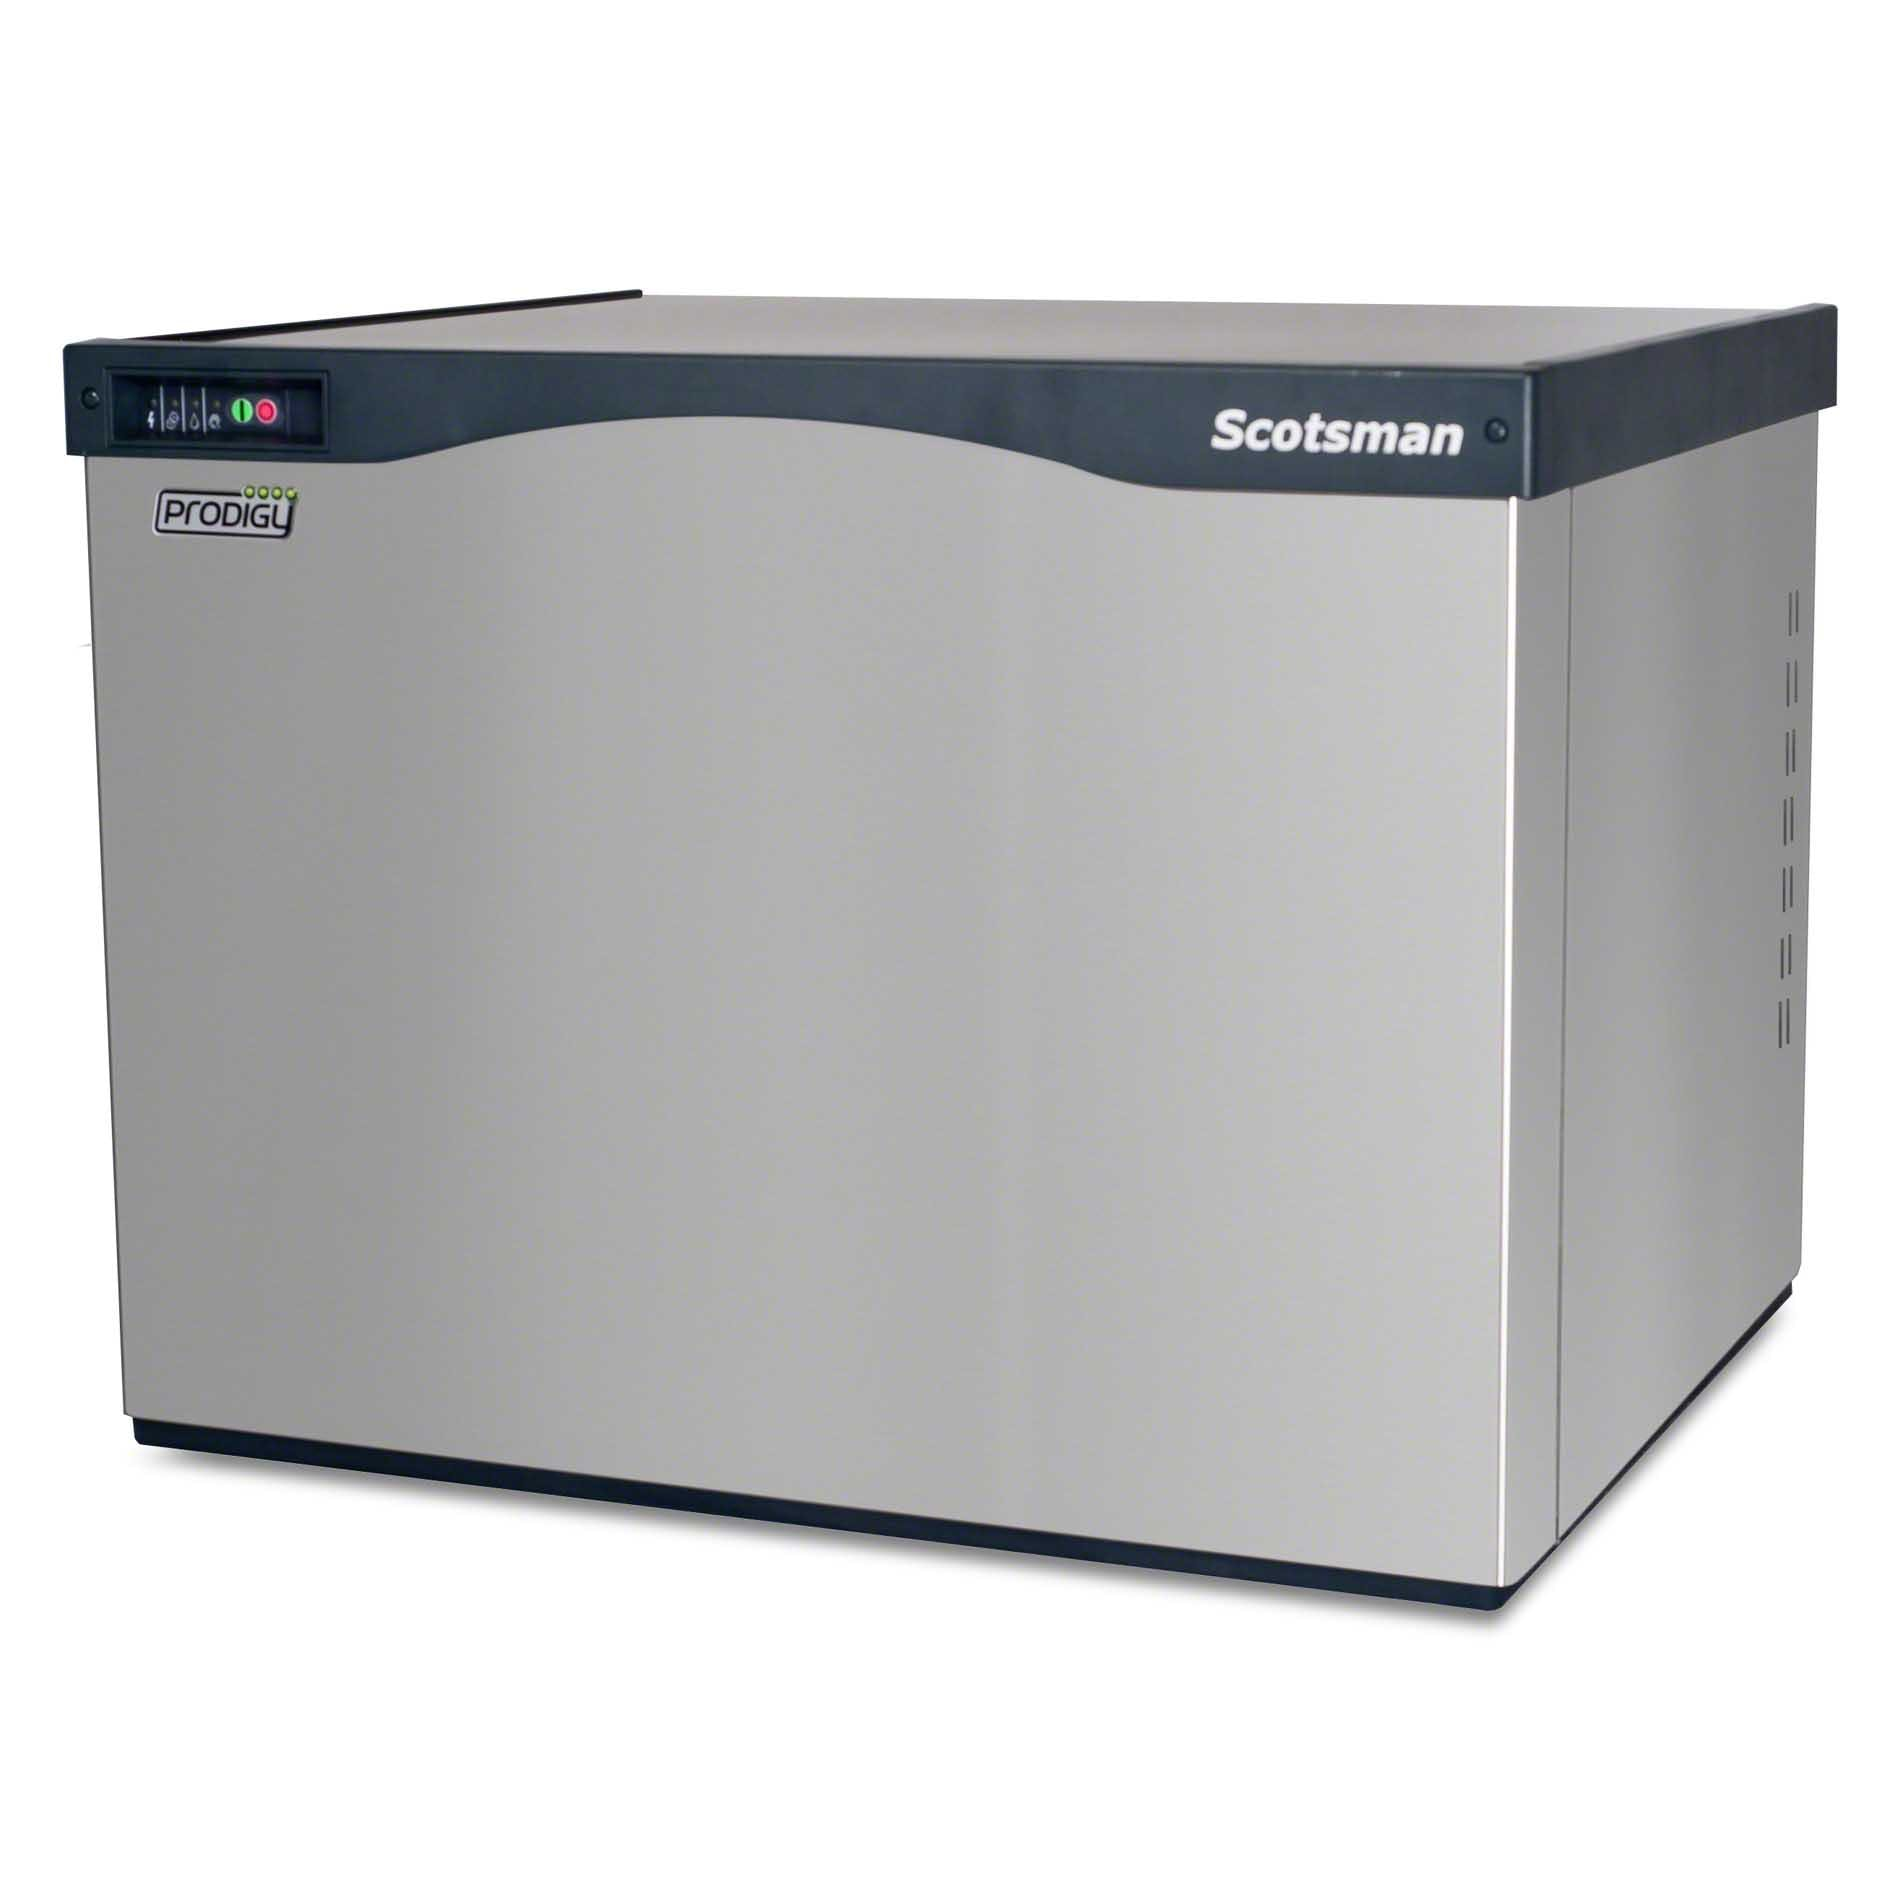 Scotsman - C0530SW-1A 595 lb Half Size Cube Ice Machine - Prodigy Series - sold by Food Service Warehouse